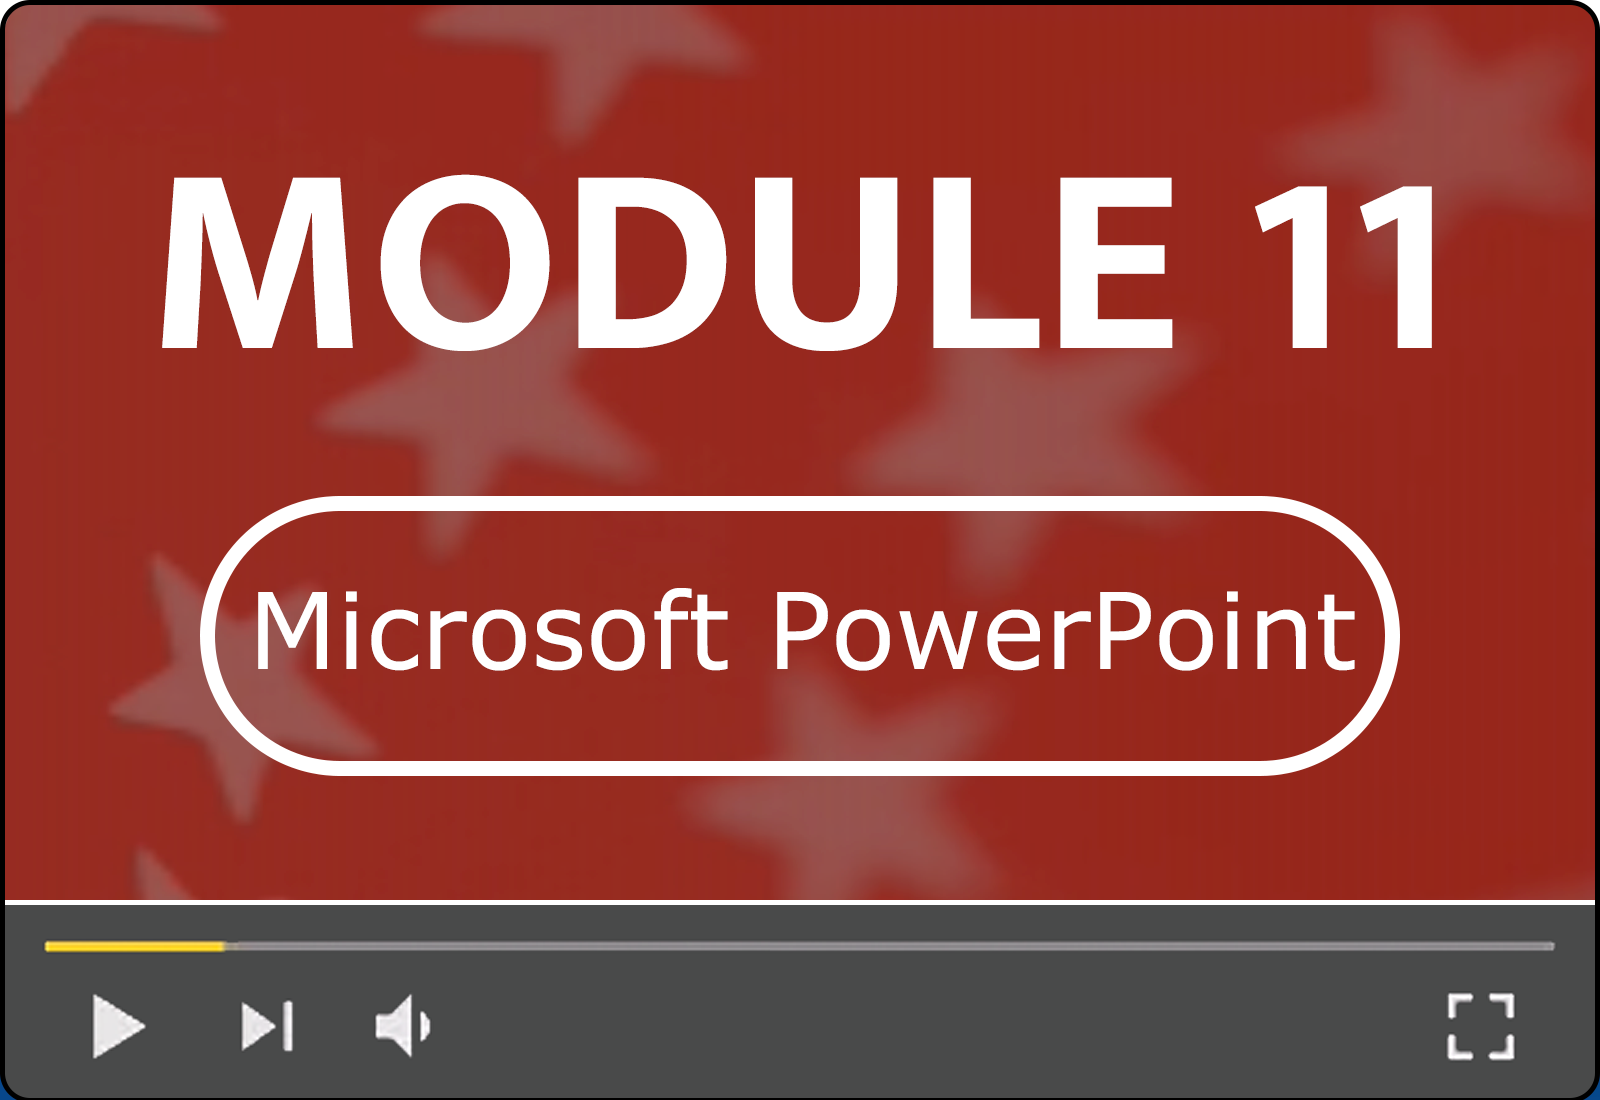 Module 11: Ensuring Descriptions of Embedded Audio, Video and Multimedia Files are Accurate